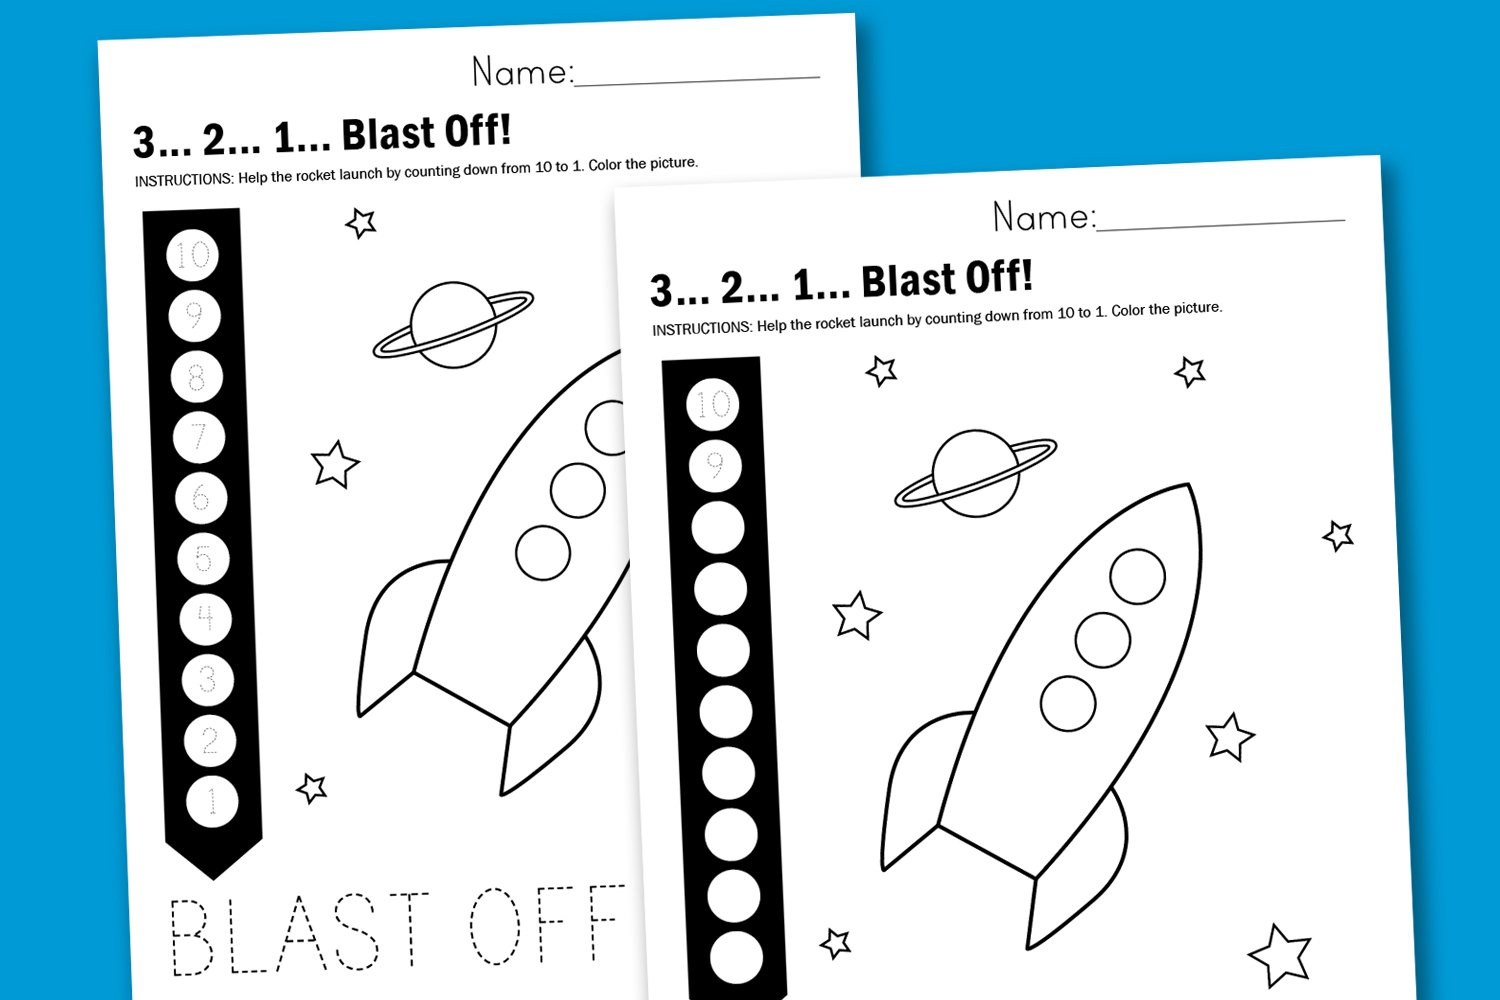 Worksheet Wednesday: 3…2…1… Blast Off! - Paging Supermom